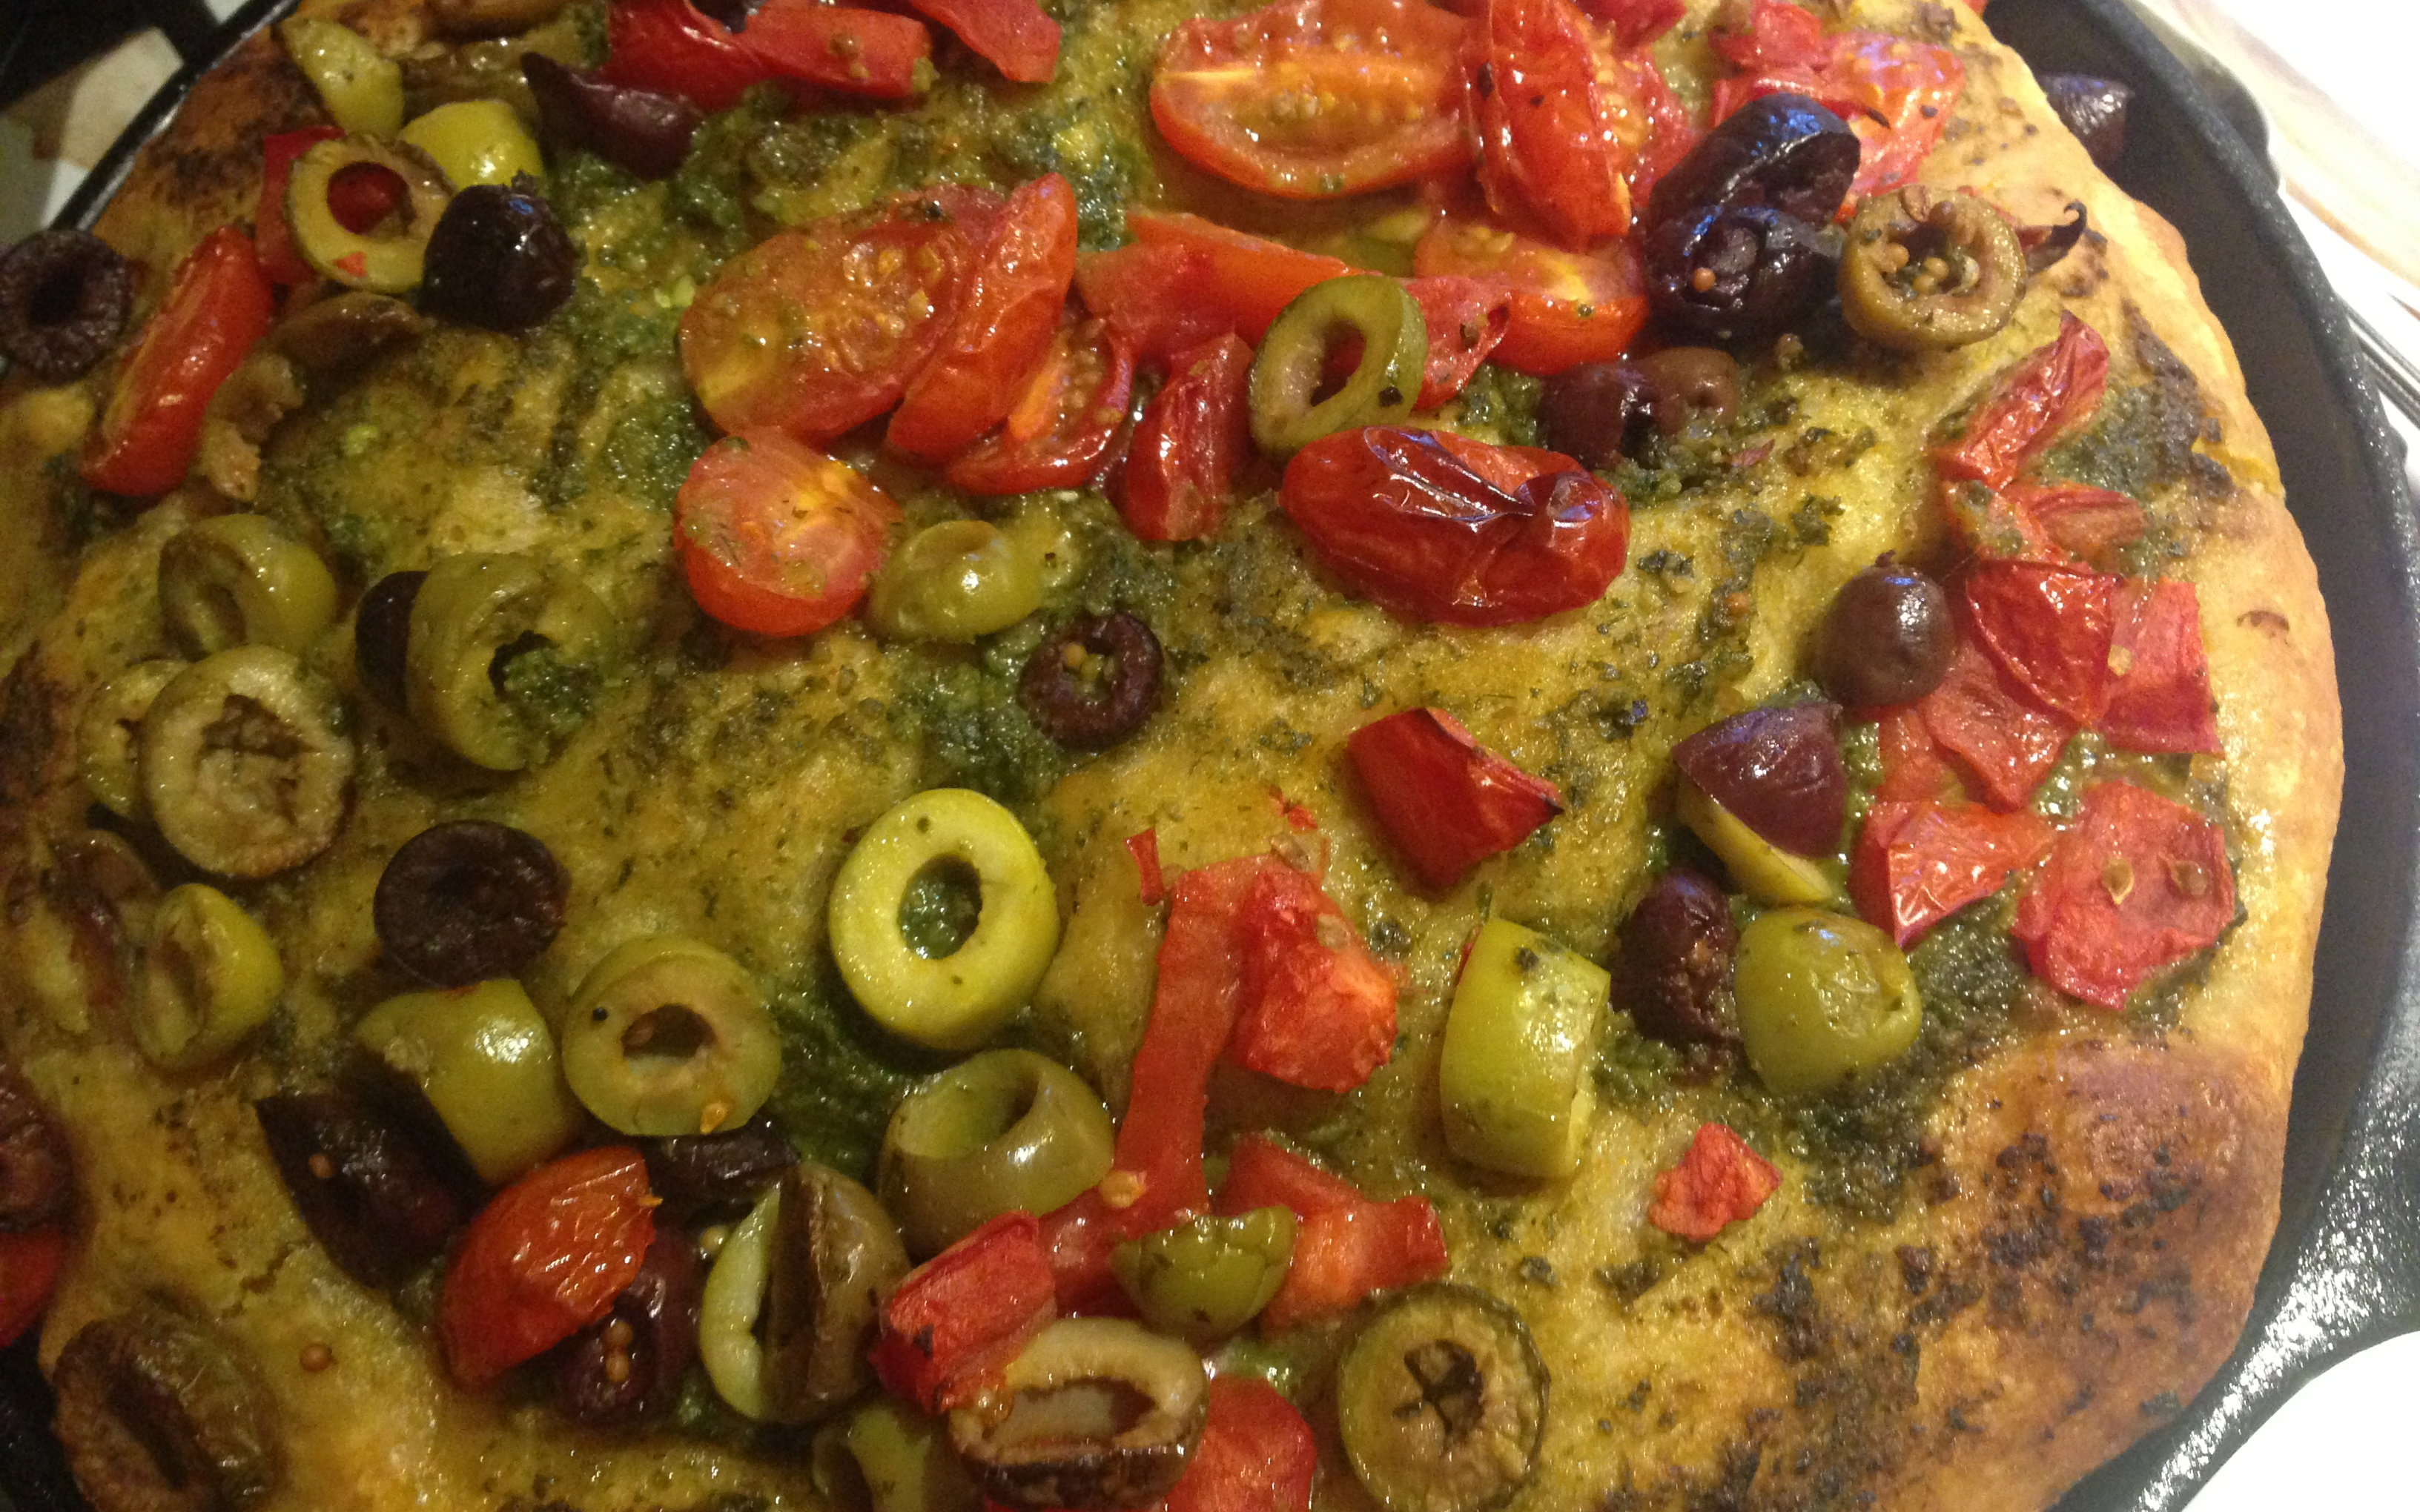 Focaccia with arugula pesto and other stuff.